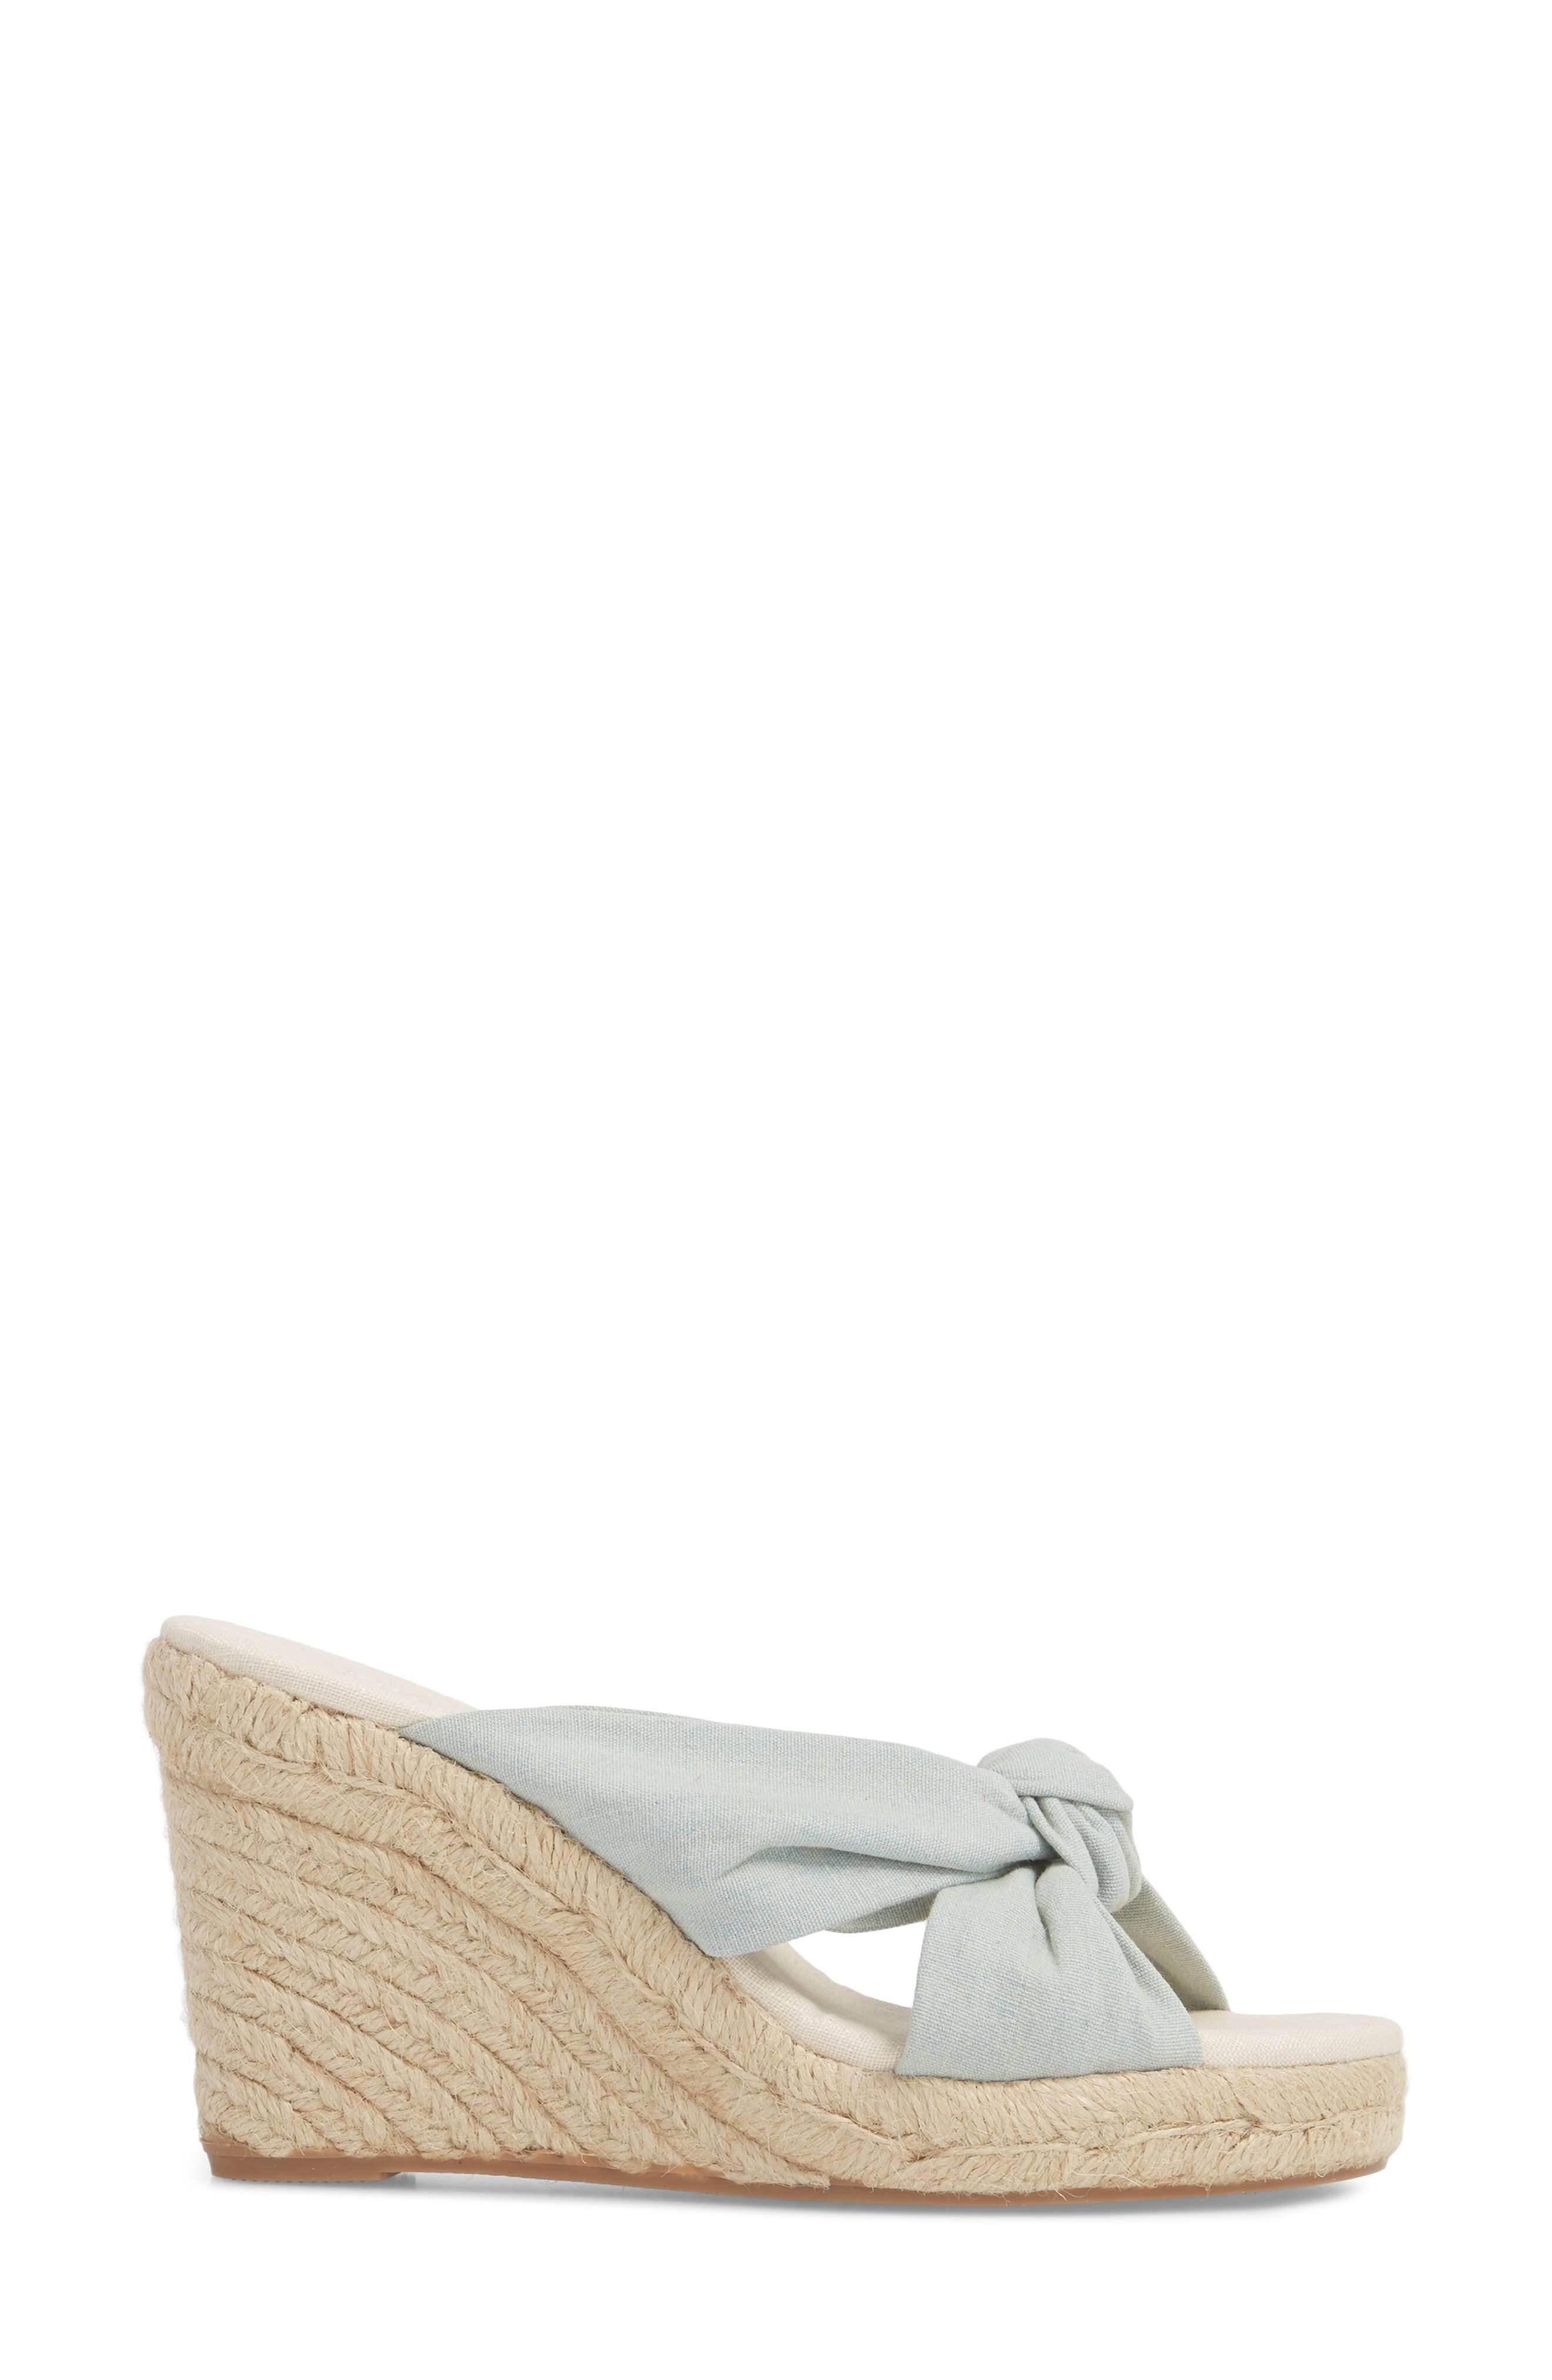 Knotted Espadrille Wedge Sandal,                             Alternate thumbnail 3, color,                             420